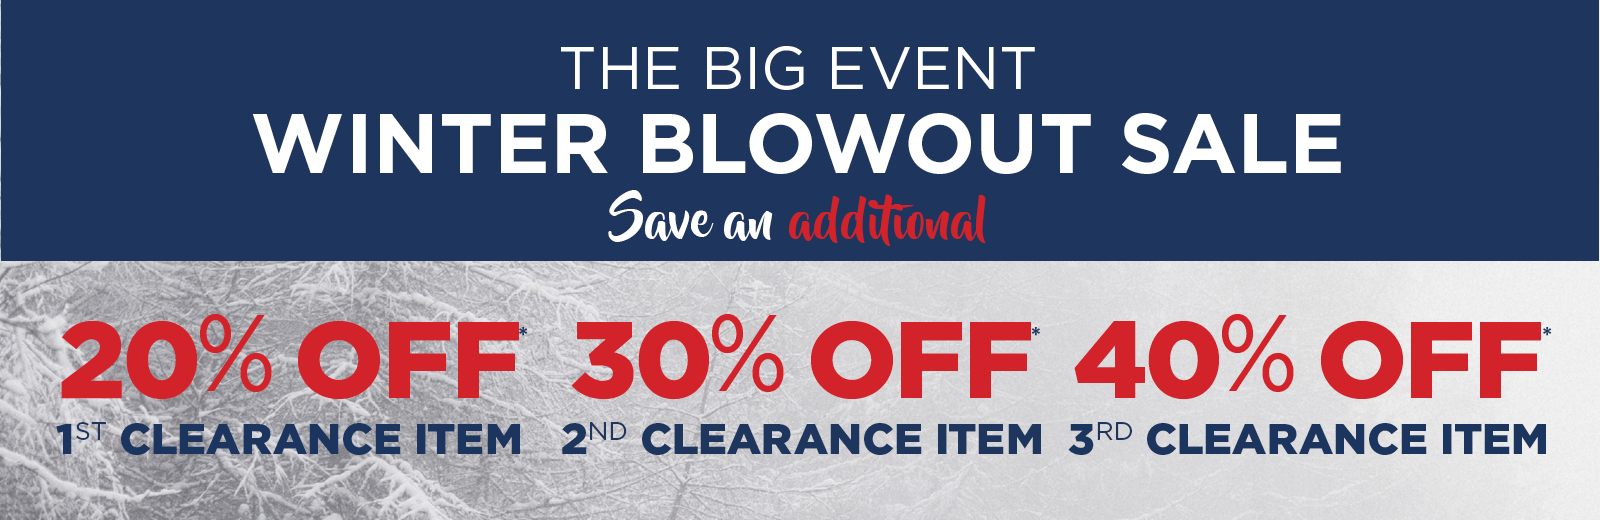 Winter Blowout Sale: 20%, 30%, 40% off Clearance Price